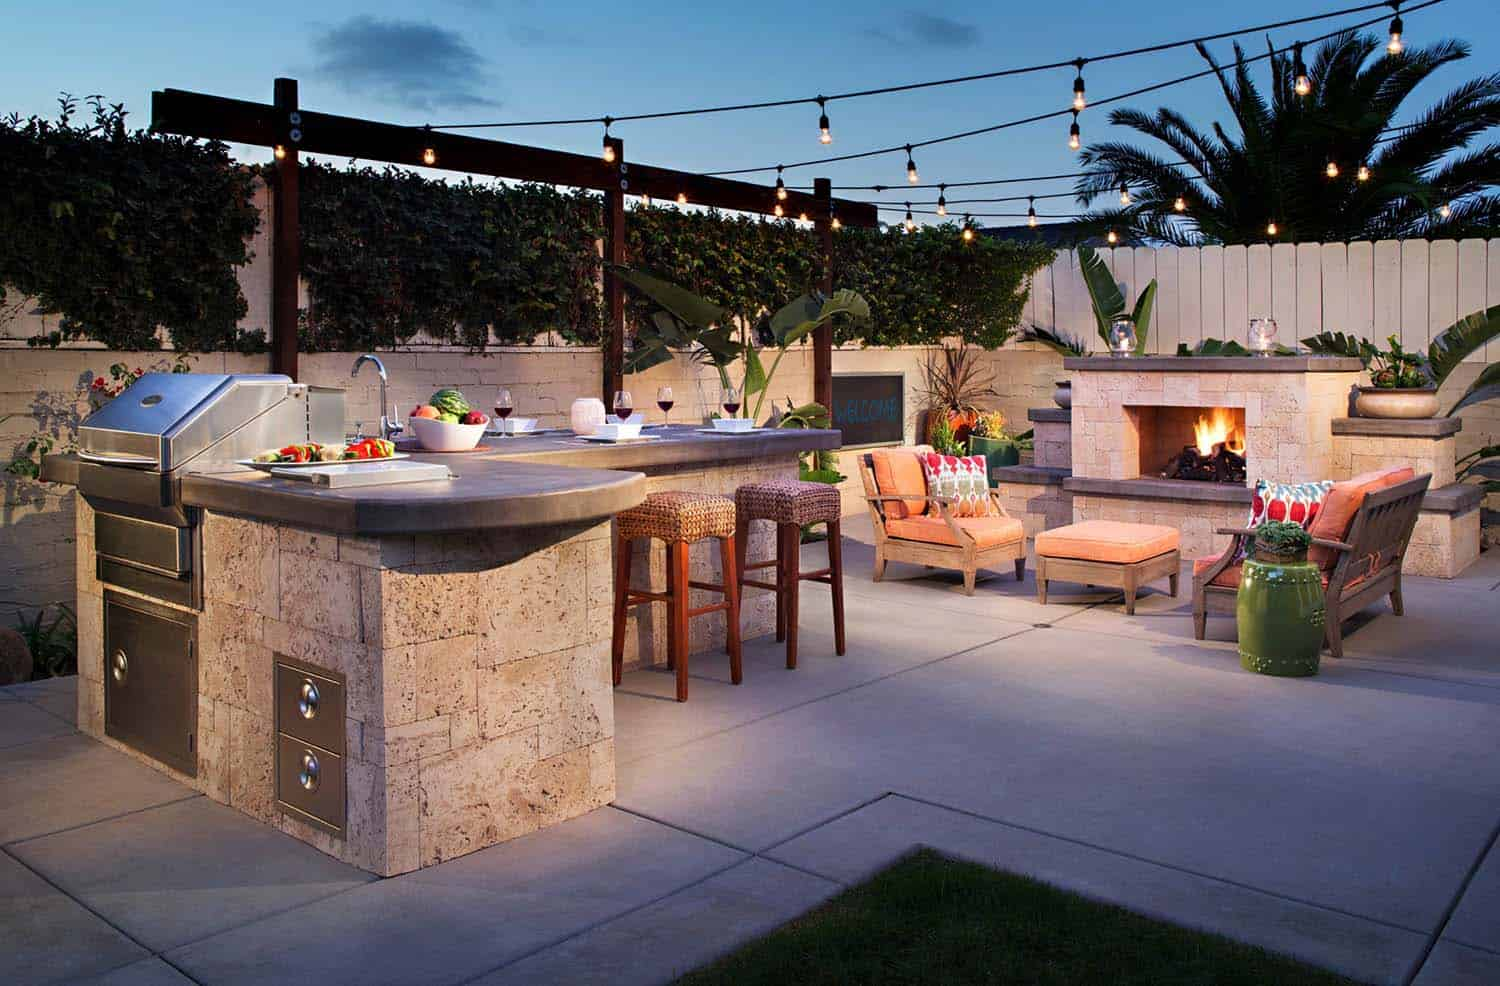 25 Amazingly Cozy Backyard Retreats Designed For Entertaining